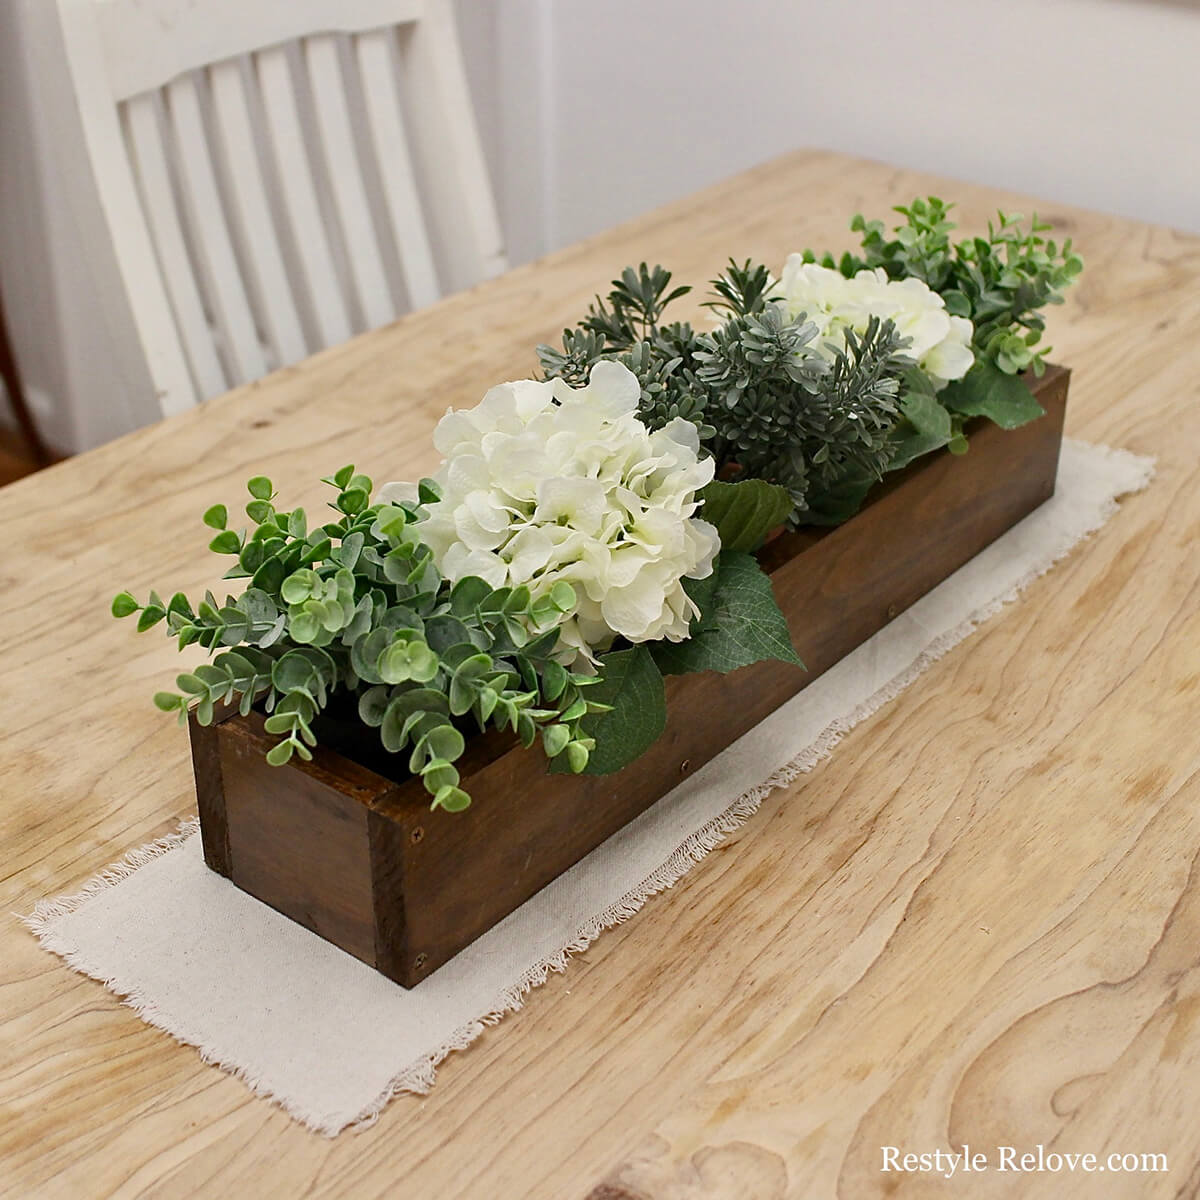 Stained Wood Flower Planter Centerpiece